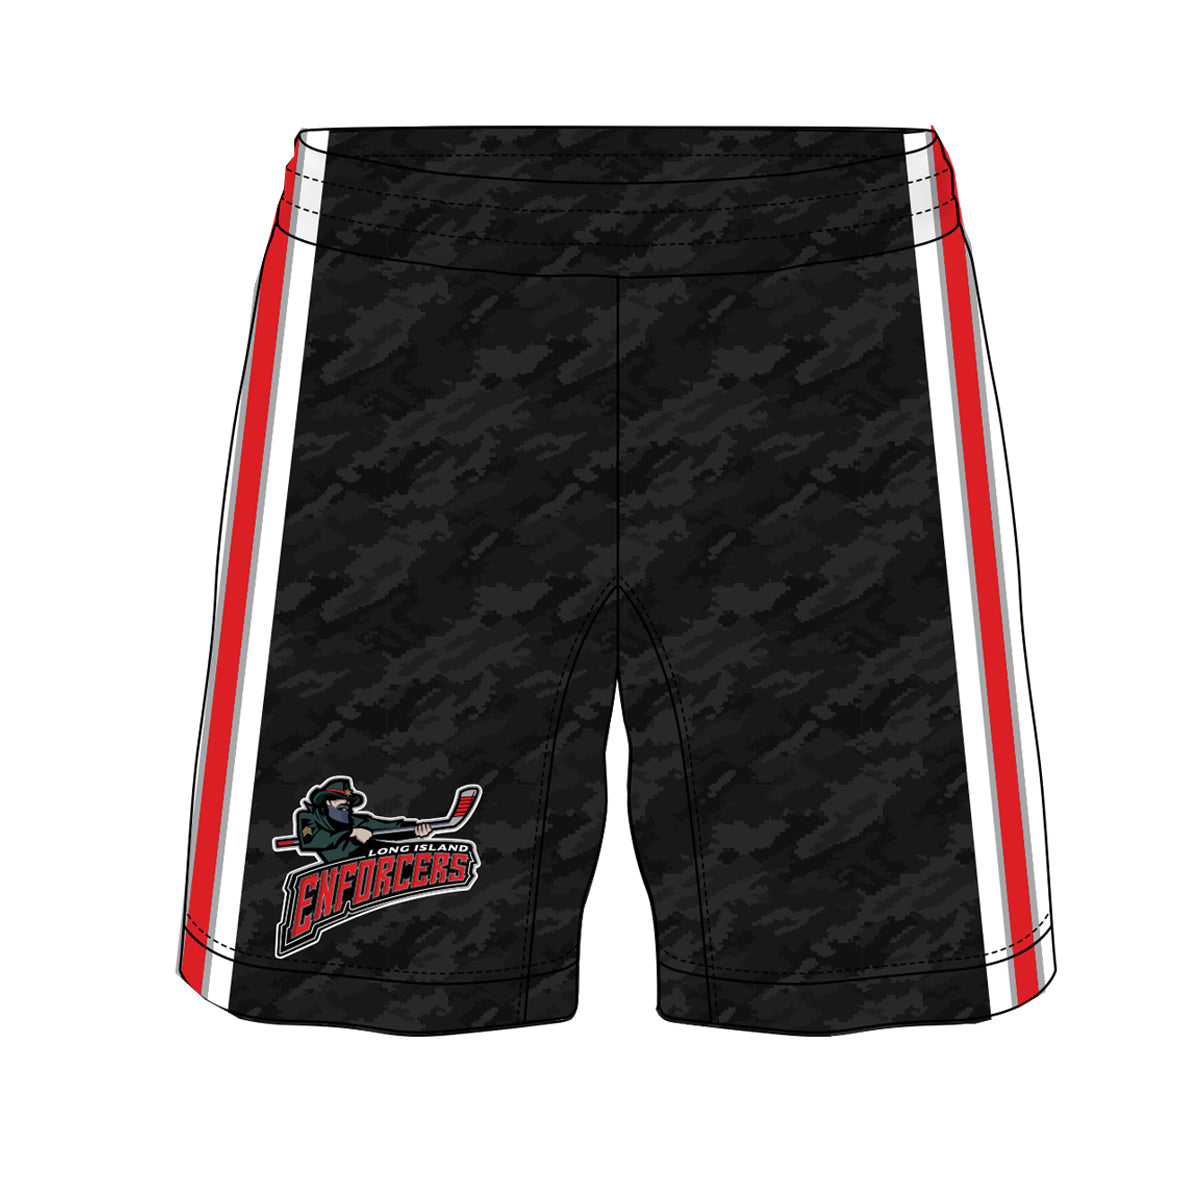 ENFORCERS | Sublimated Shorts - Black DigiCamo